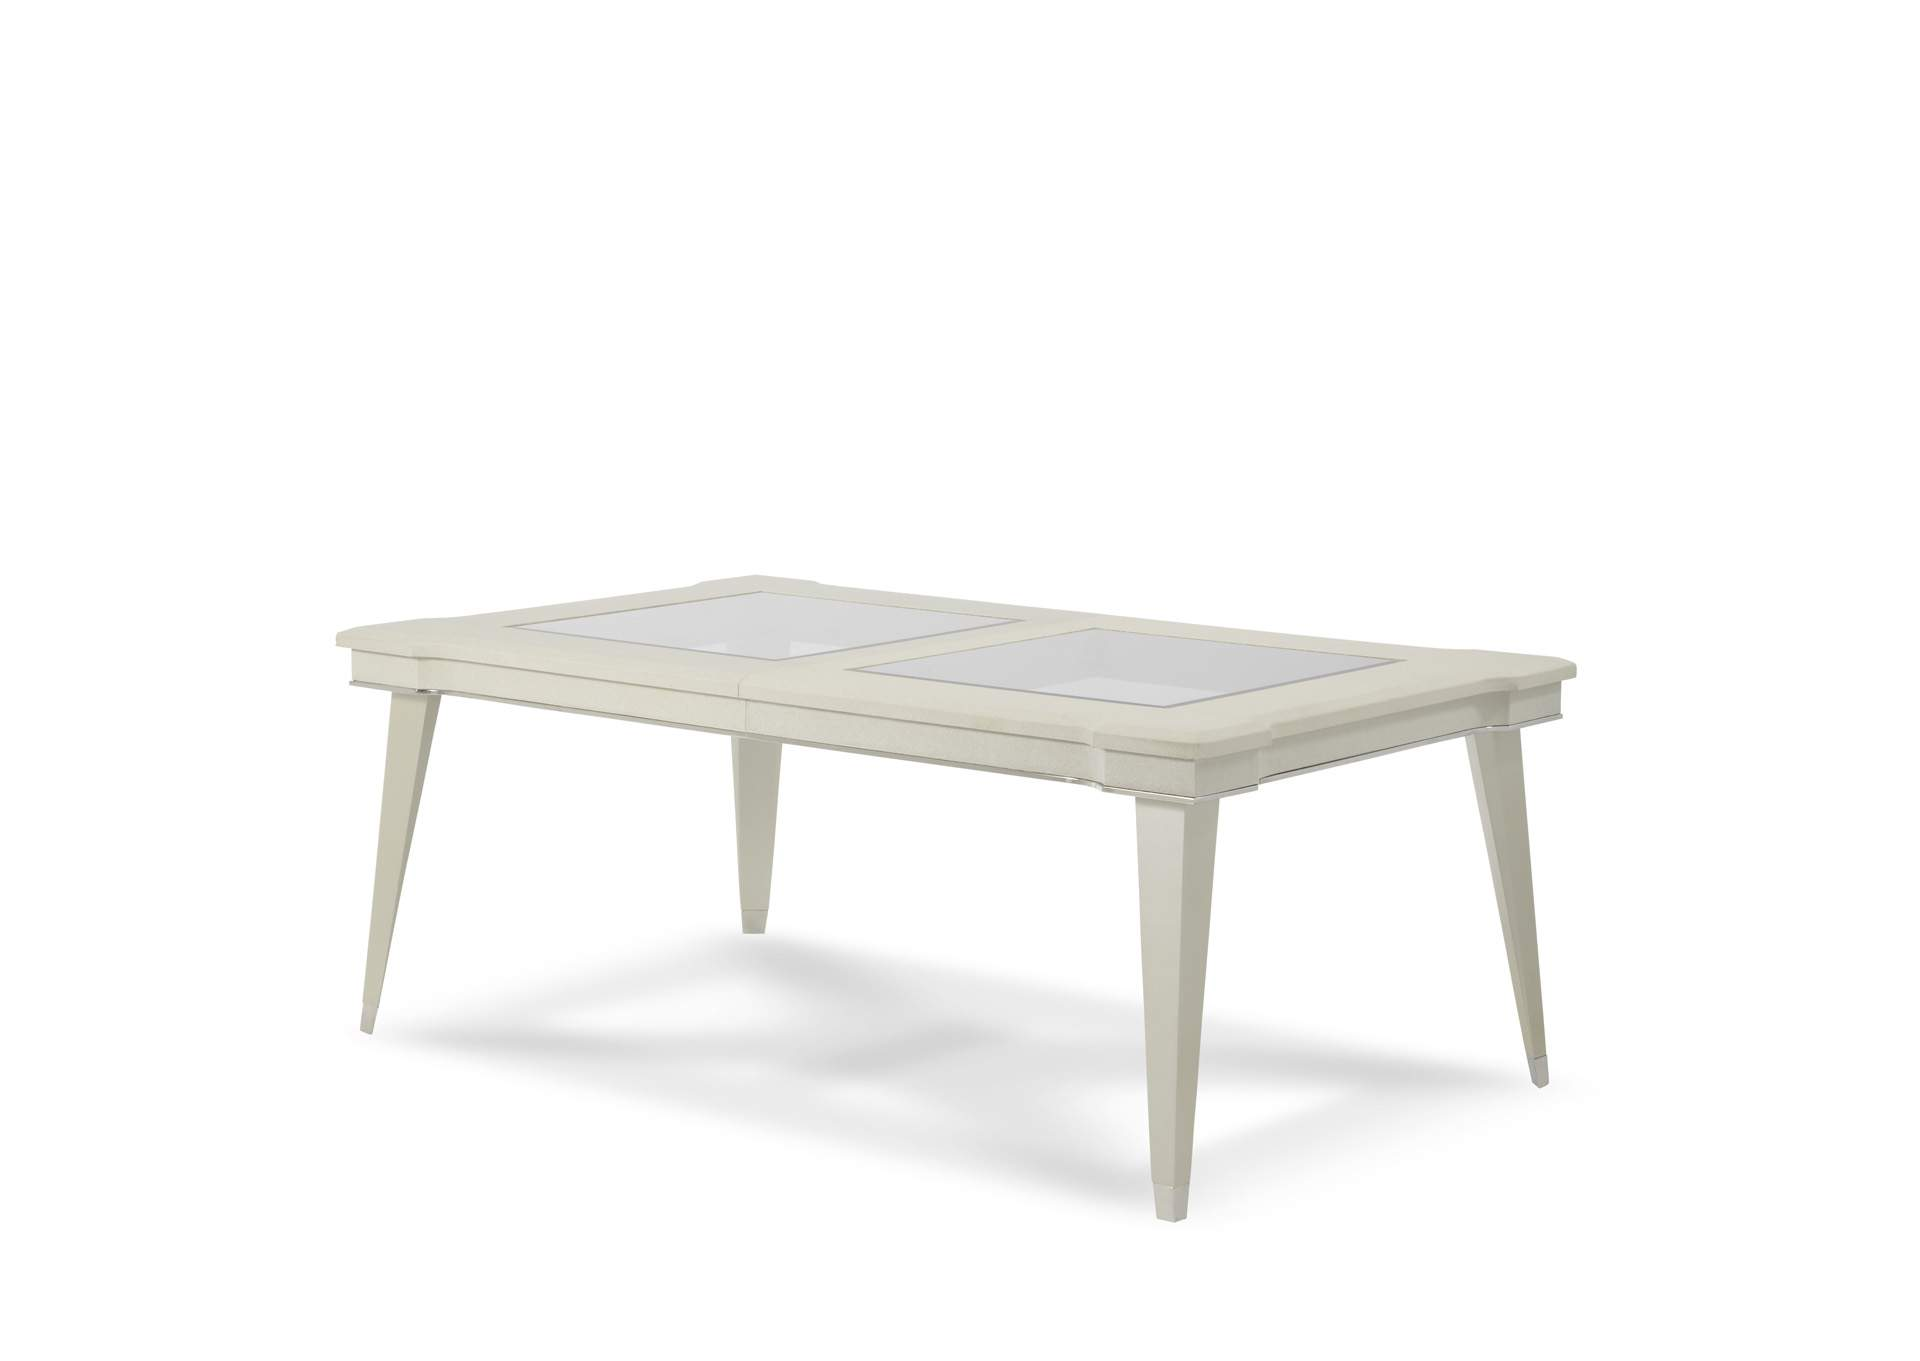 Beverly Blvd Pearl Caviar 4 Leg Dining Table w/Glass Inserts,AICO